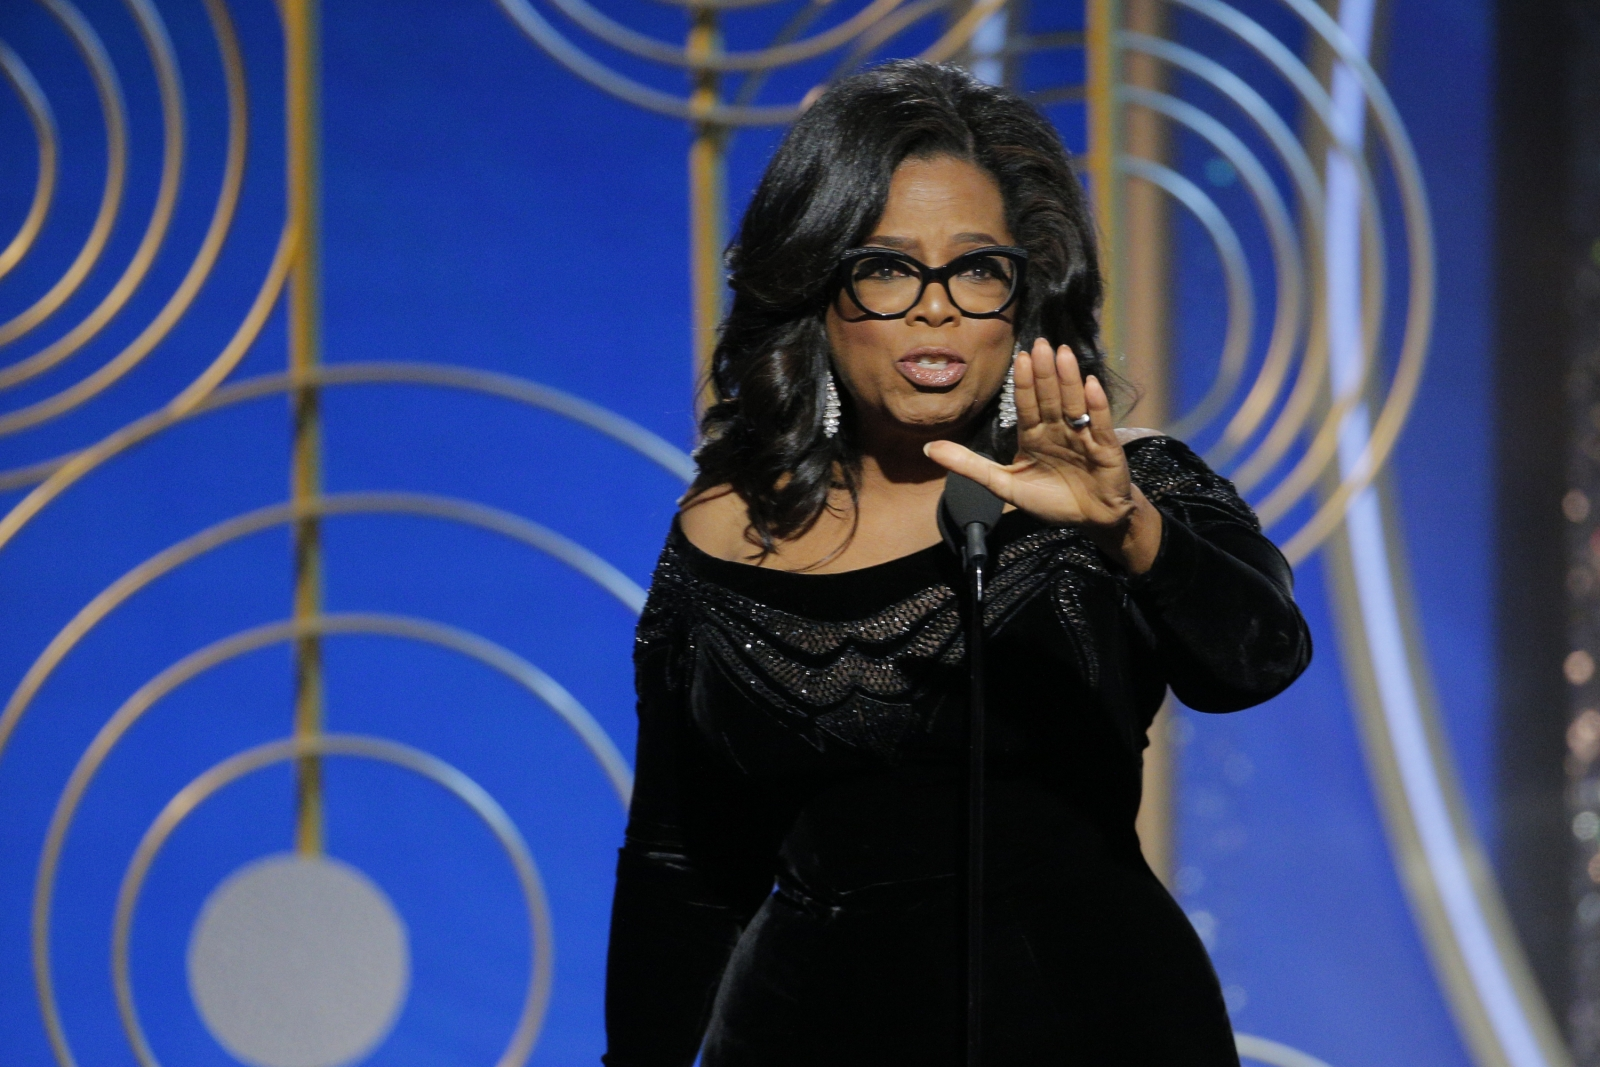 Donald Trump Thinks He'd Have 'Fun' Beating Oprah In 2020